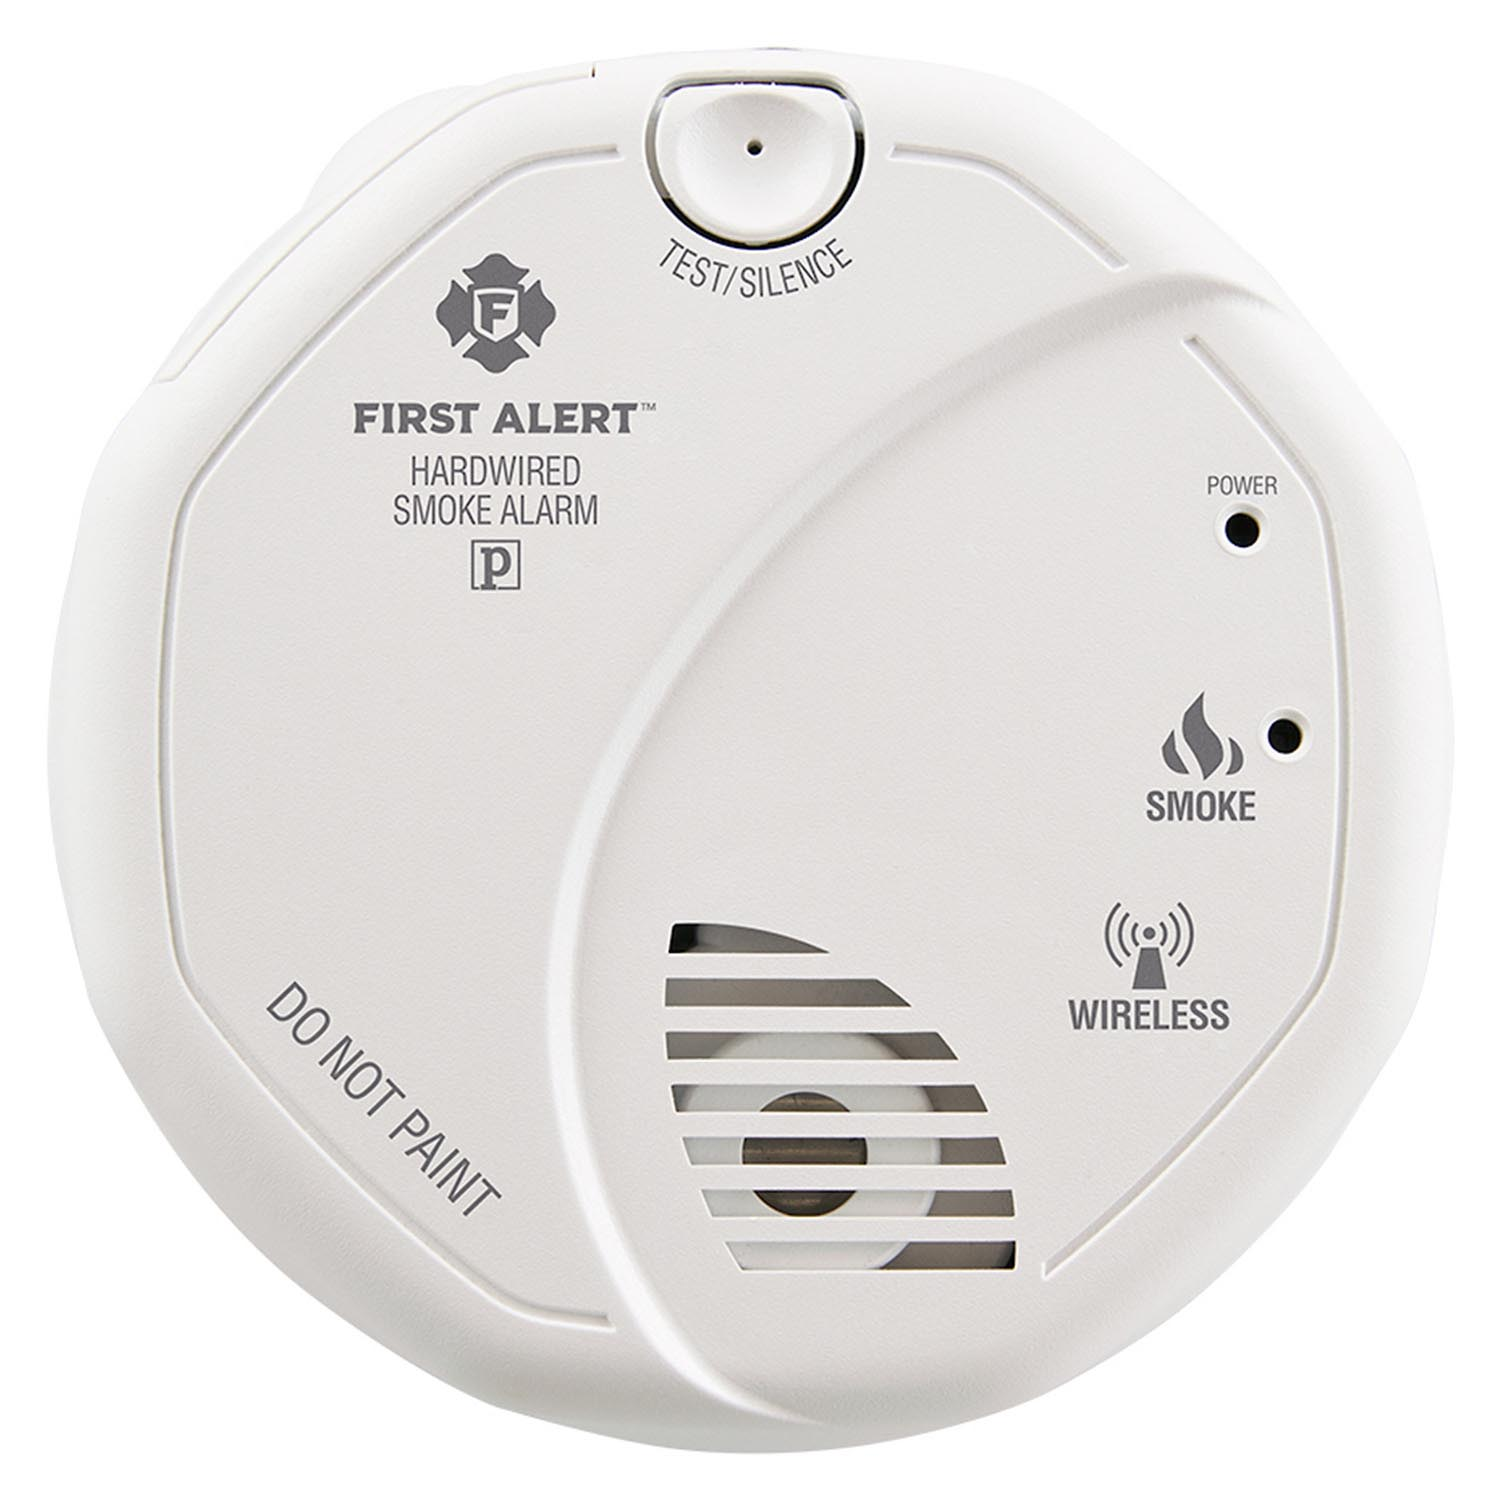 First Alert Smoke Detector Wiring Diagram Data Wire Detectors Sa521cn 3st Wireless Interconnect Hardwired Alarm Installation Schematic